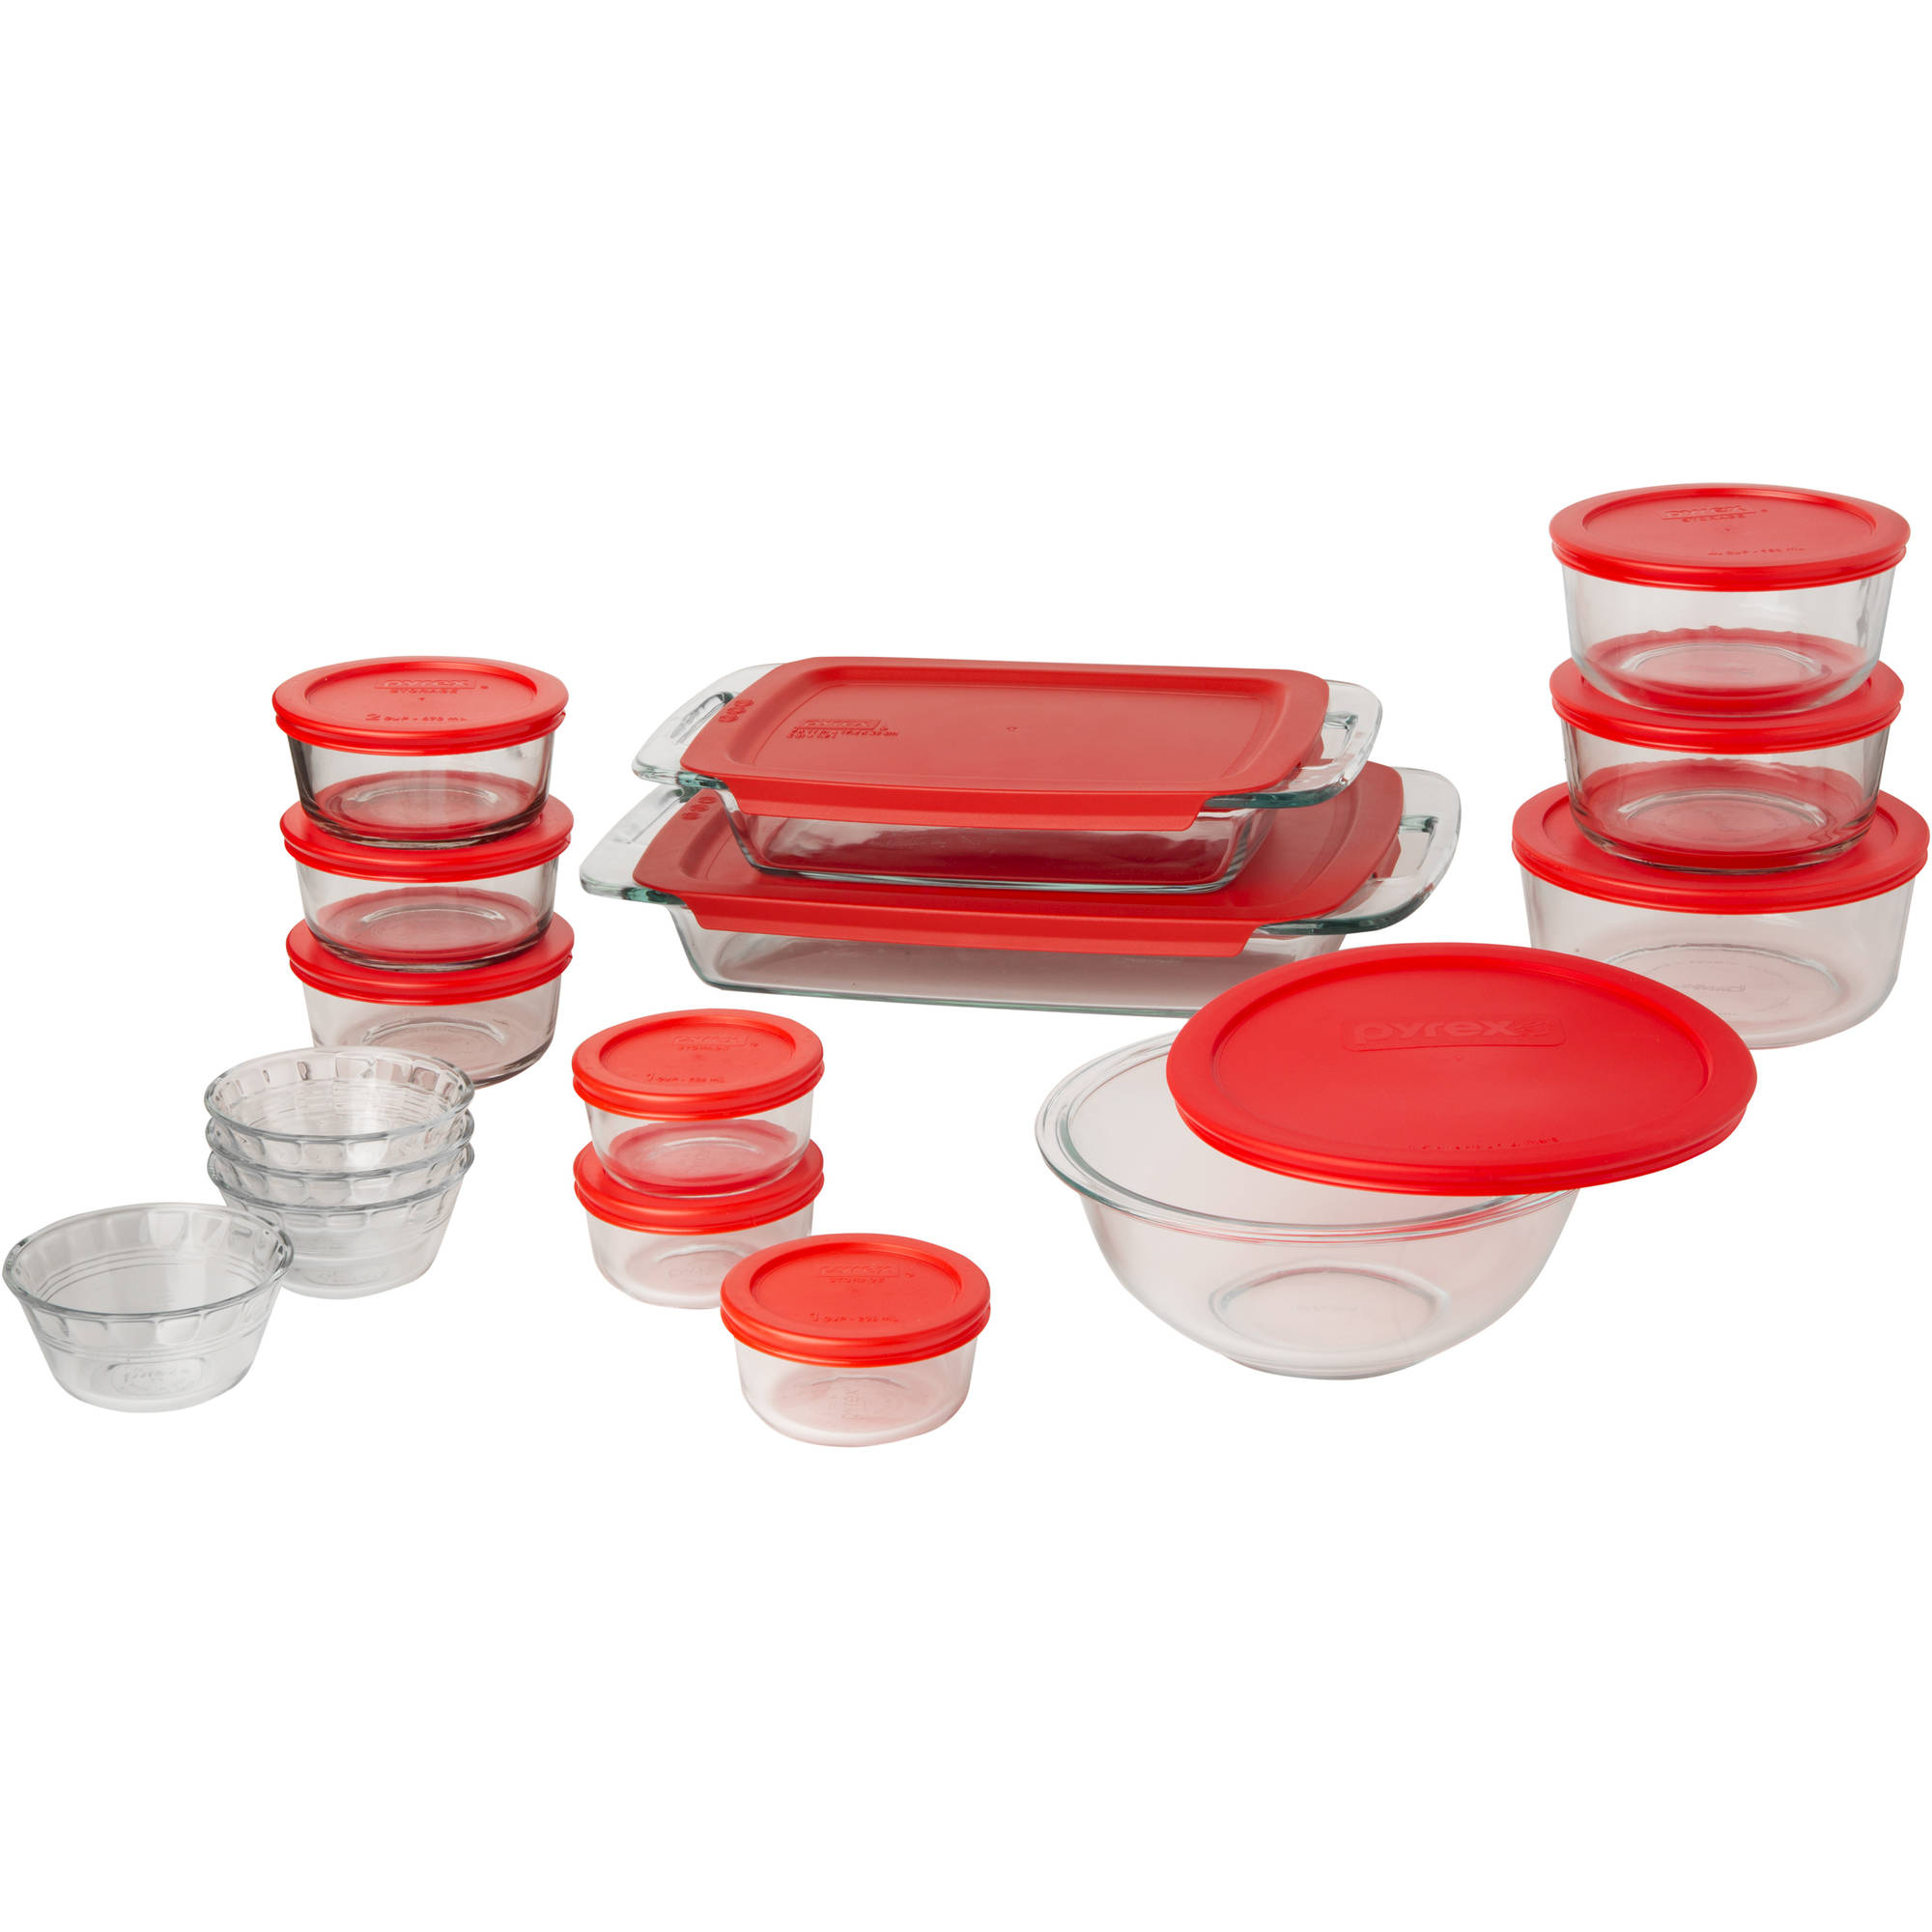 Pyrex Easy Grab 28-Piece Bake and Store Set, Red Food Storage, Bakeware